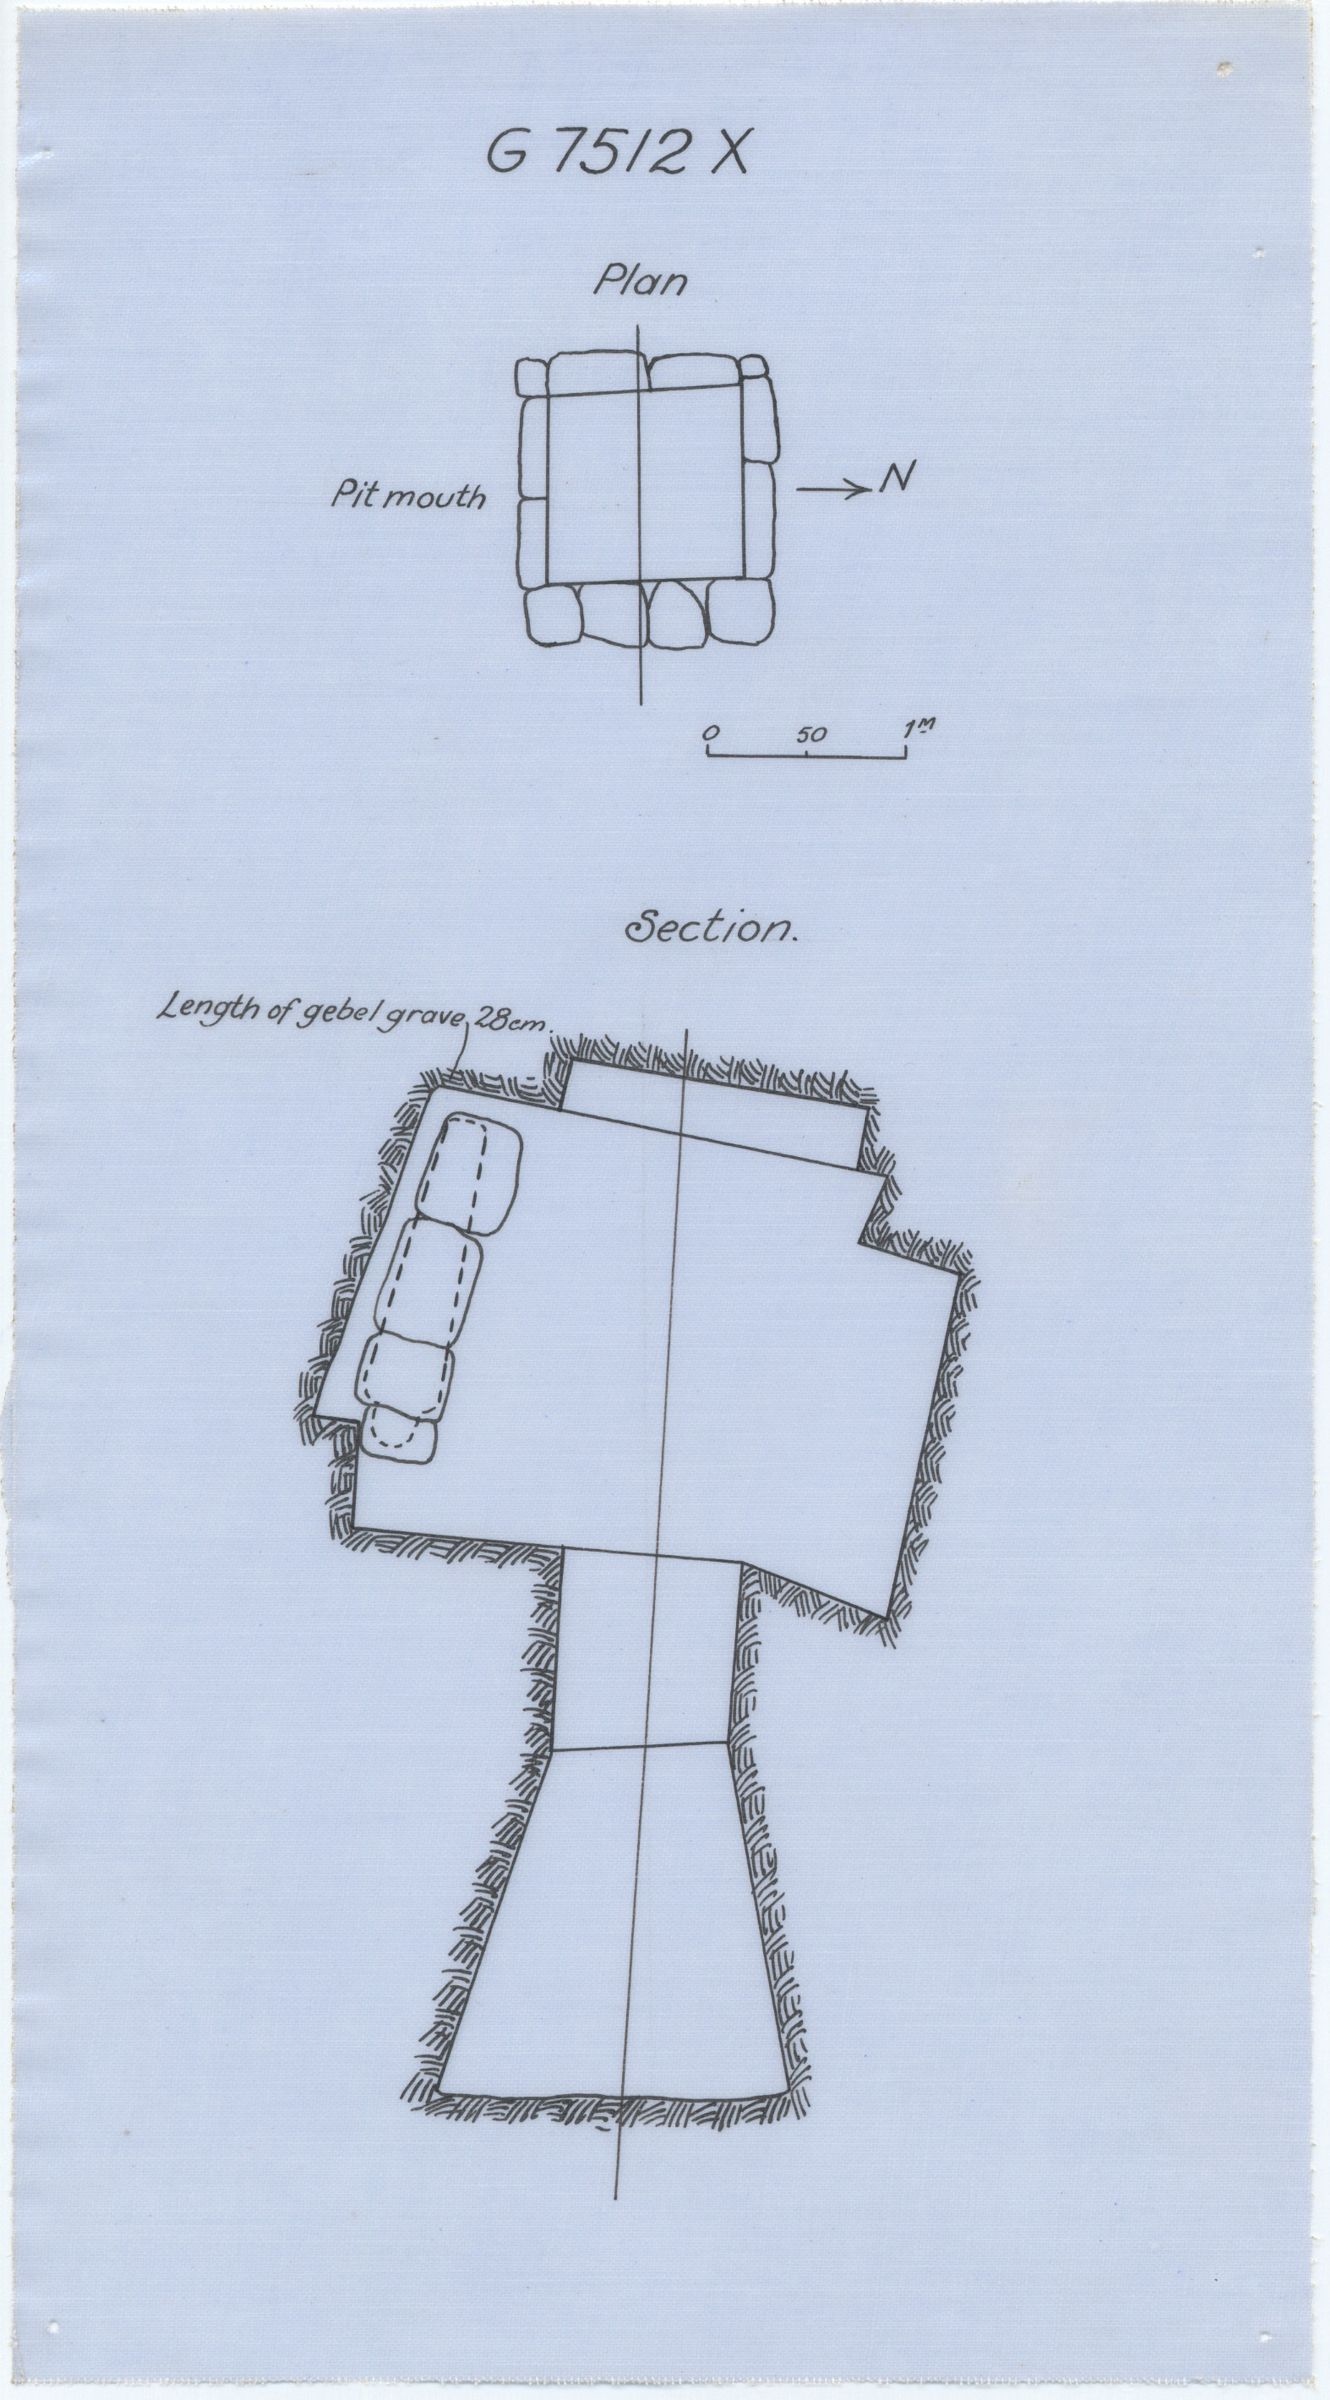 Maps and plans: G 7512, Shaft X